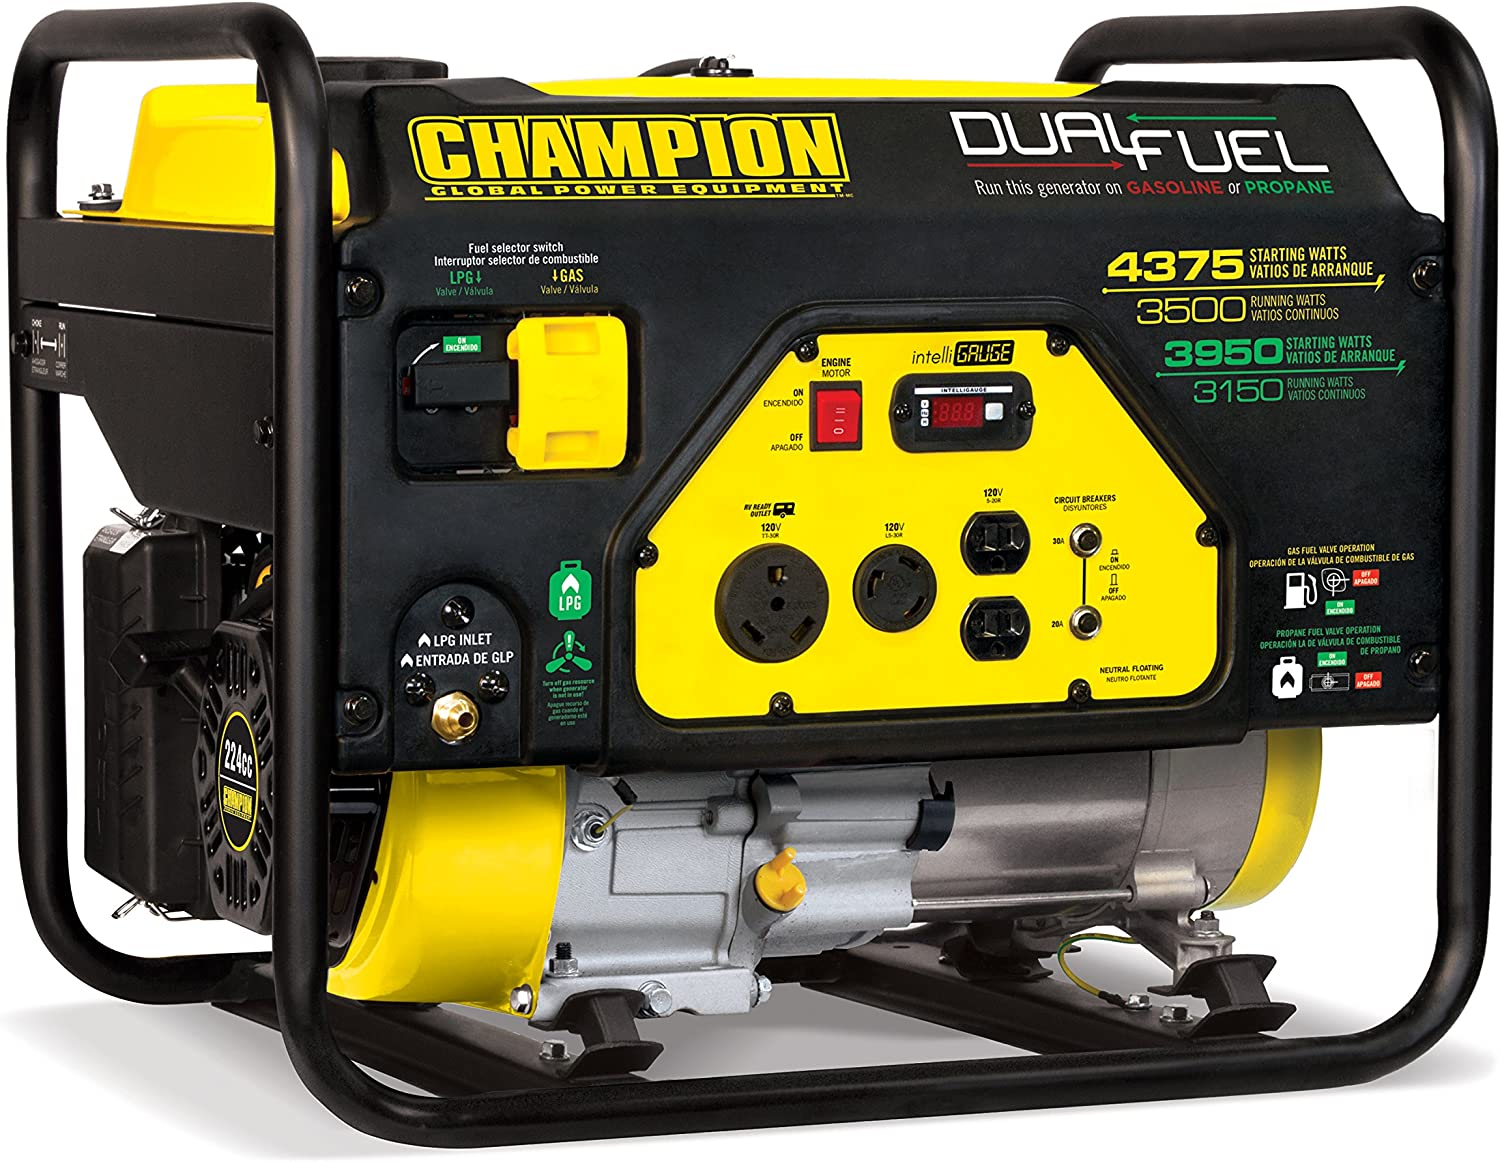 Best Home Generators For Power Outages (2021): Top 10 List 8